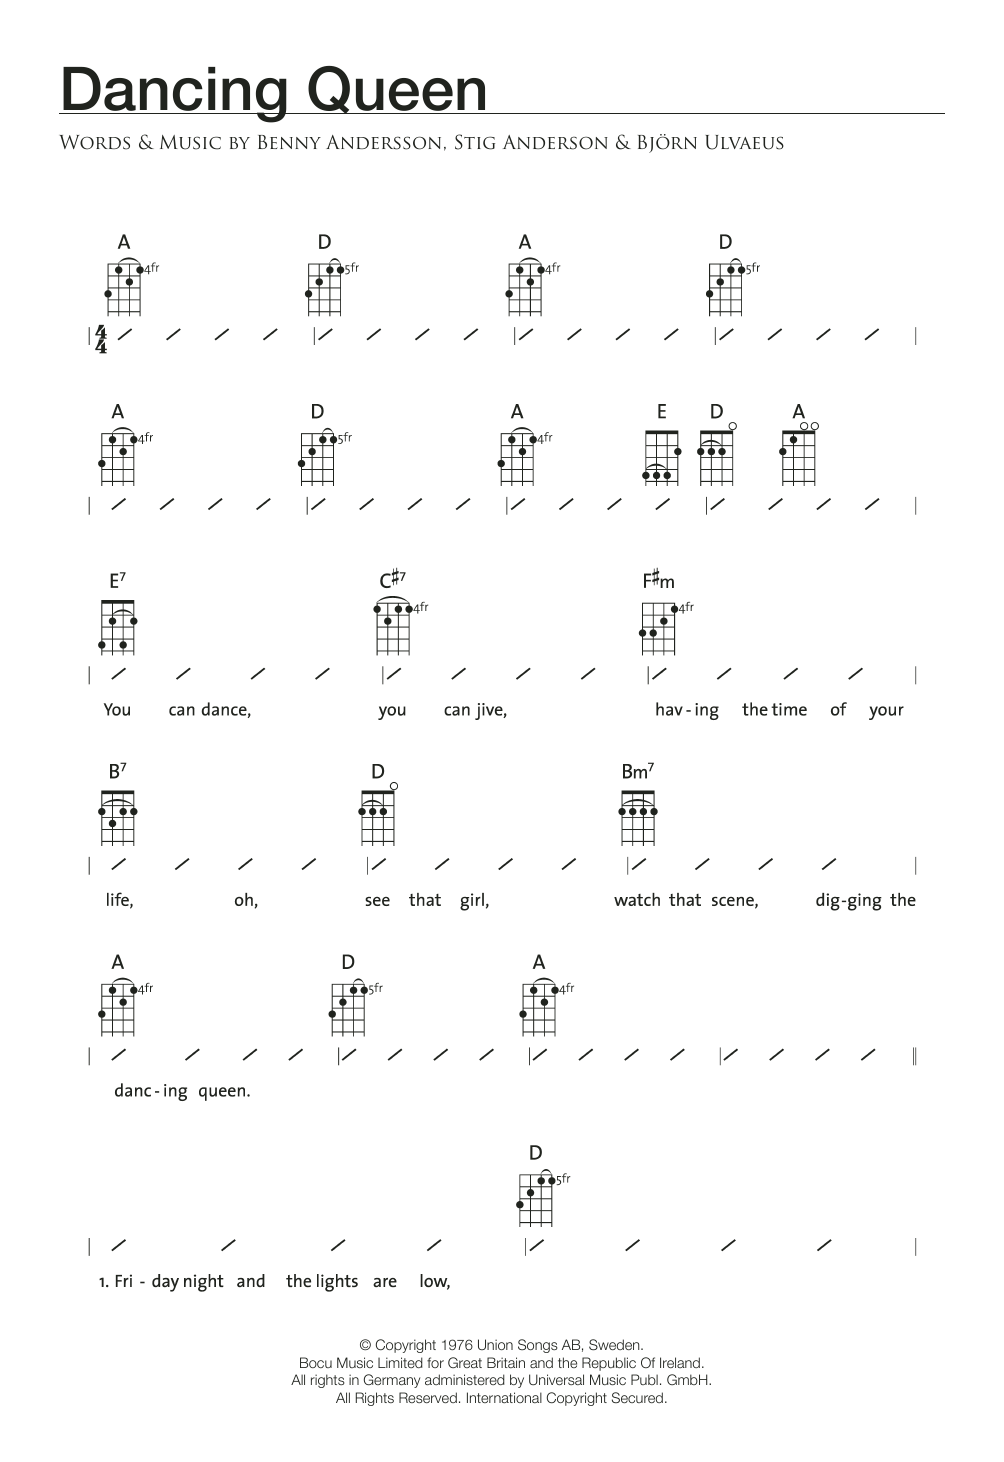 Dancing Queen by ABBA Ukulele with Strumming Patterns Digital Sheet Music